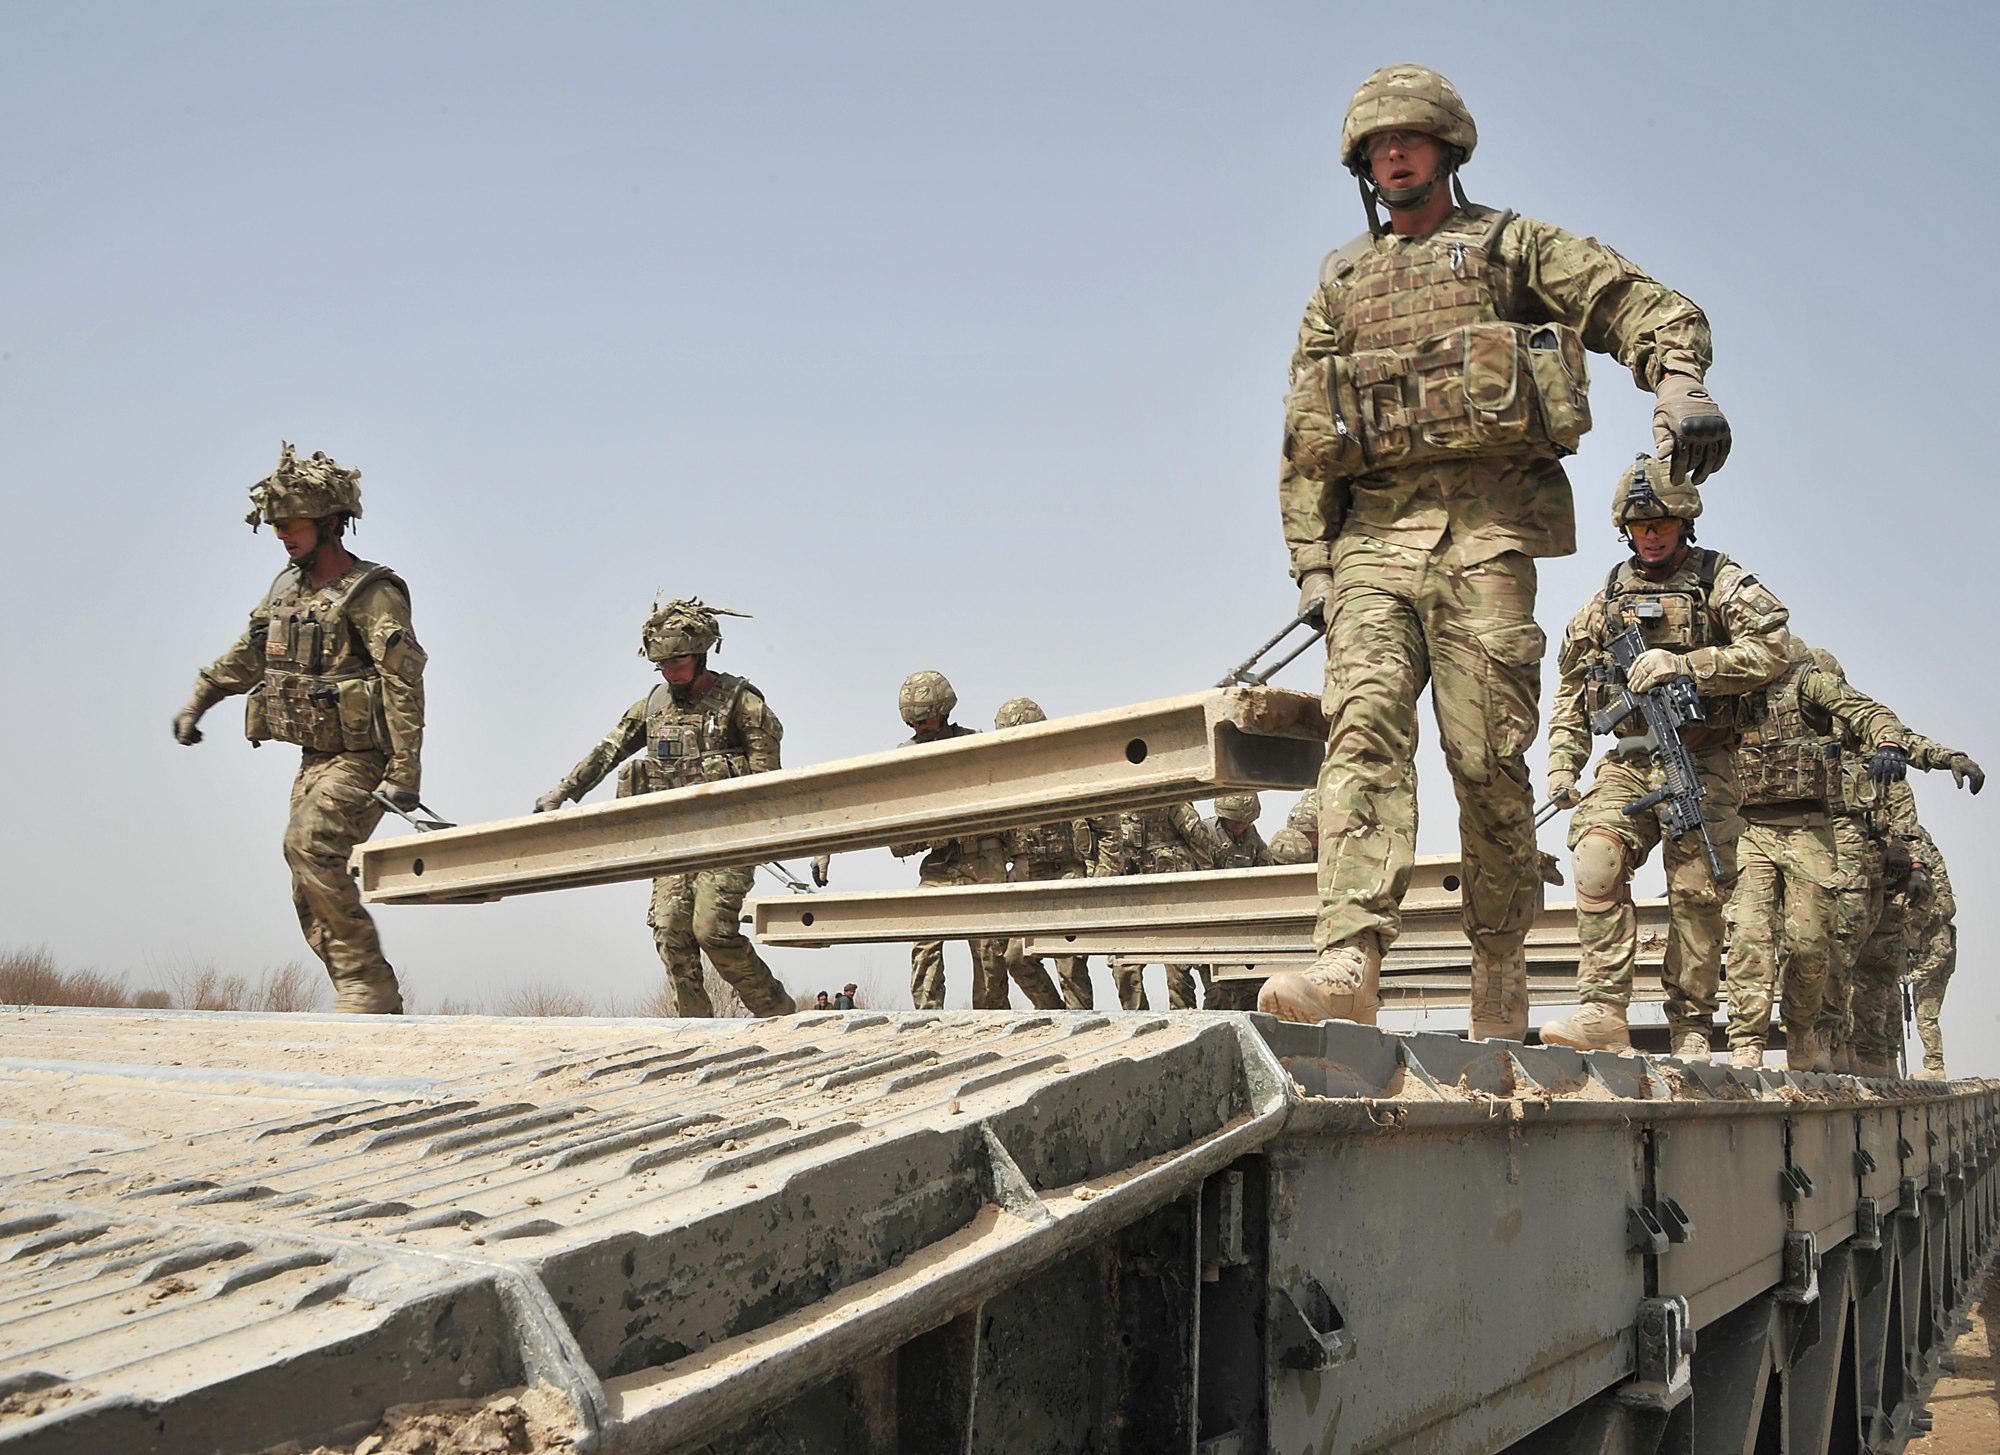 Royal Engineers from 37 Squadron working with a Medium Girder Bridge (MGB) during an operation in Afghanistan. Crown Copyright.